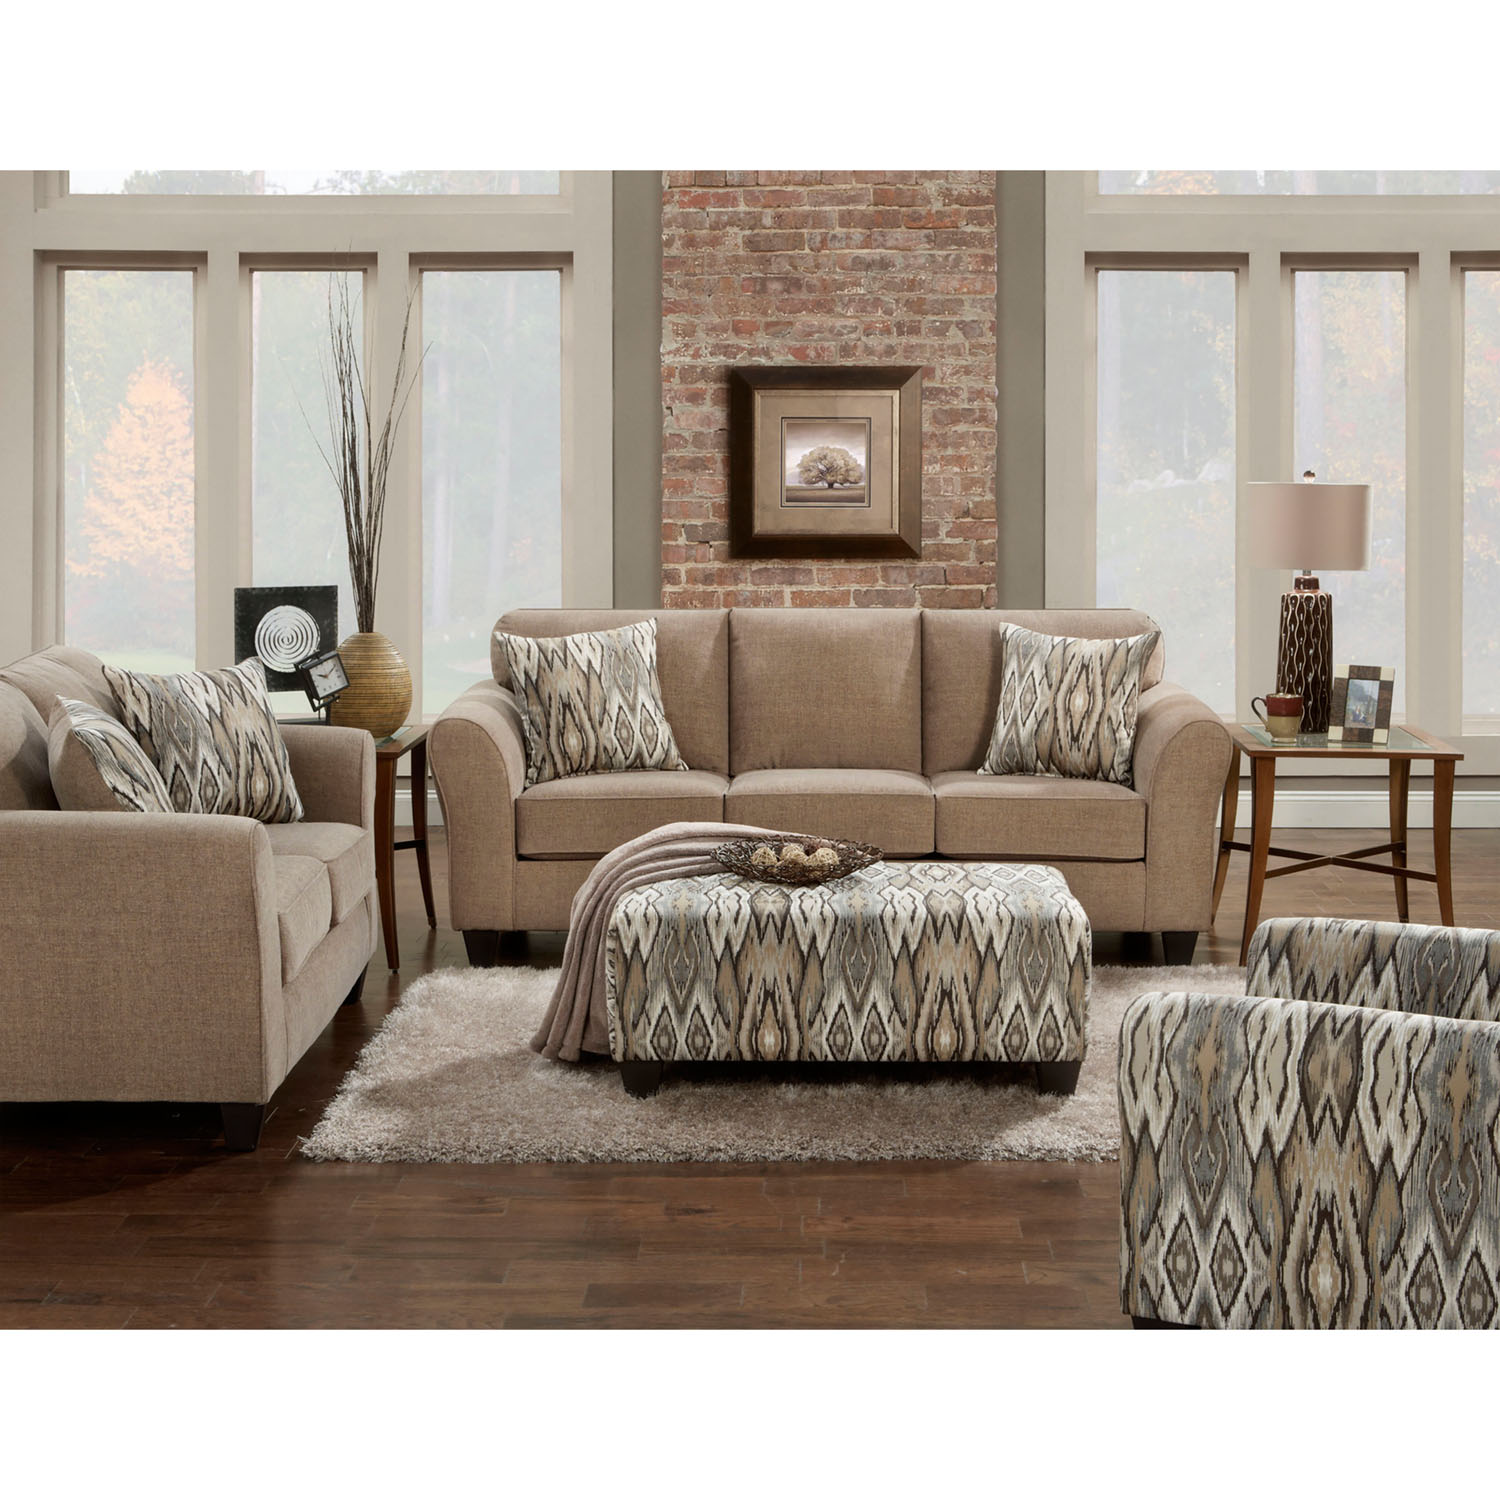 Cambridge Haverhill Two Piece Living Room Set in Tan: Sofa and Loveseat